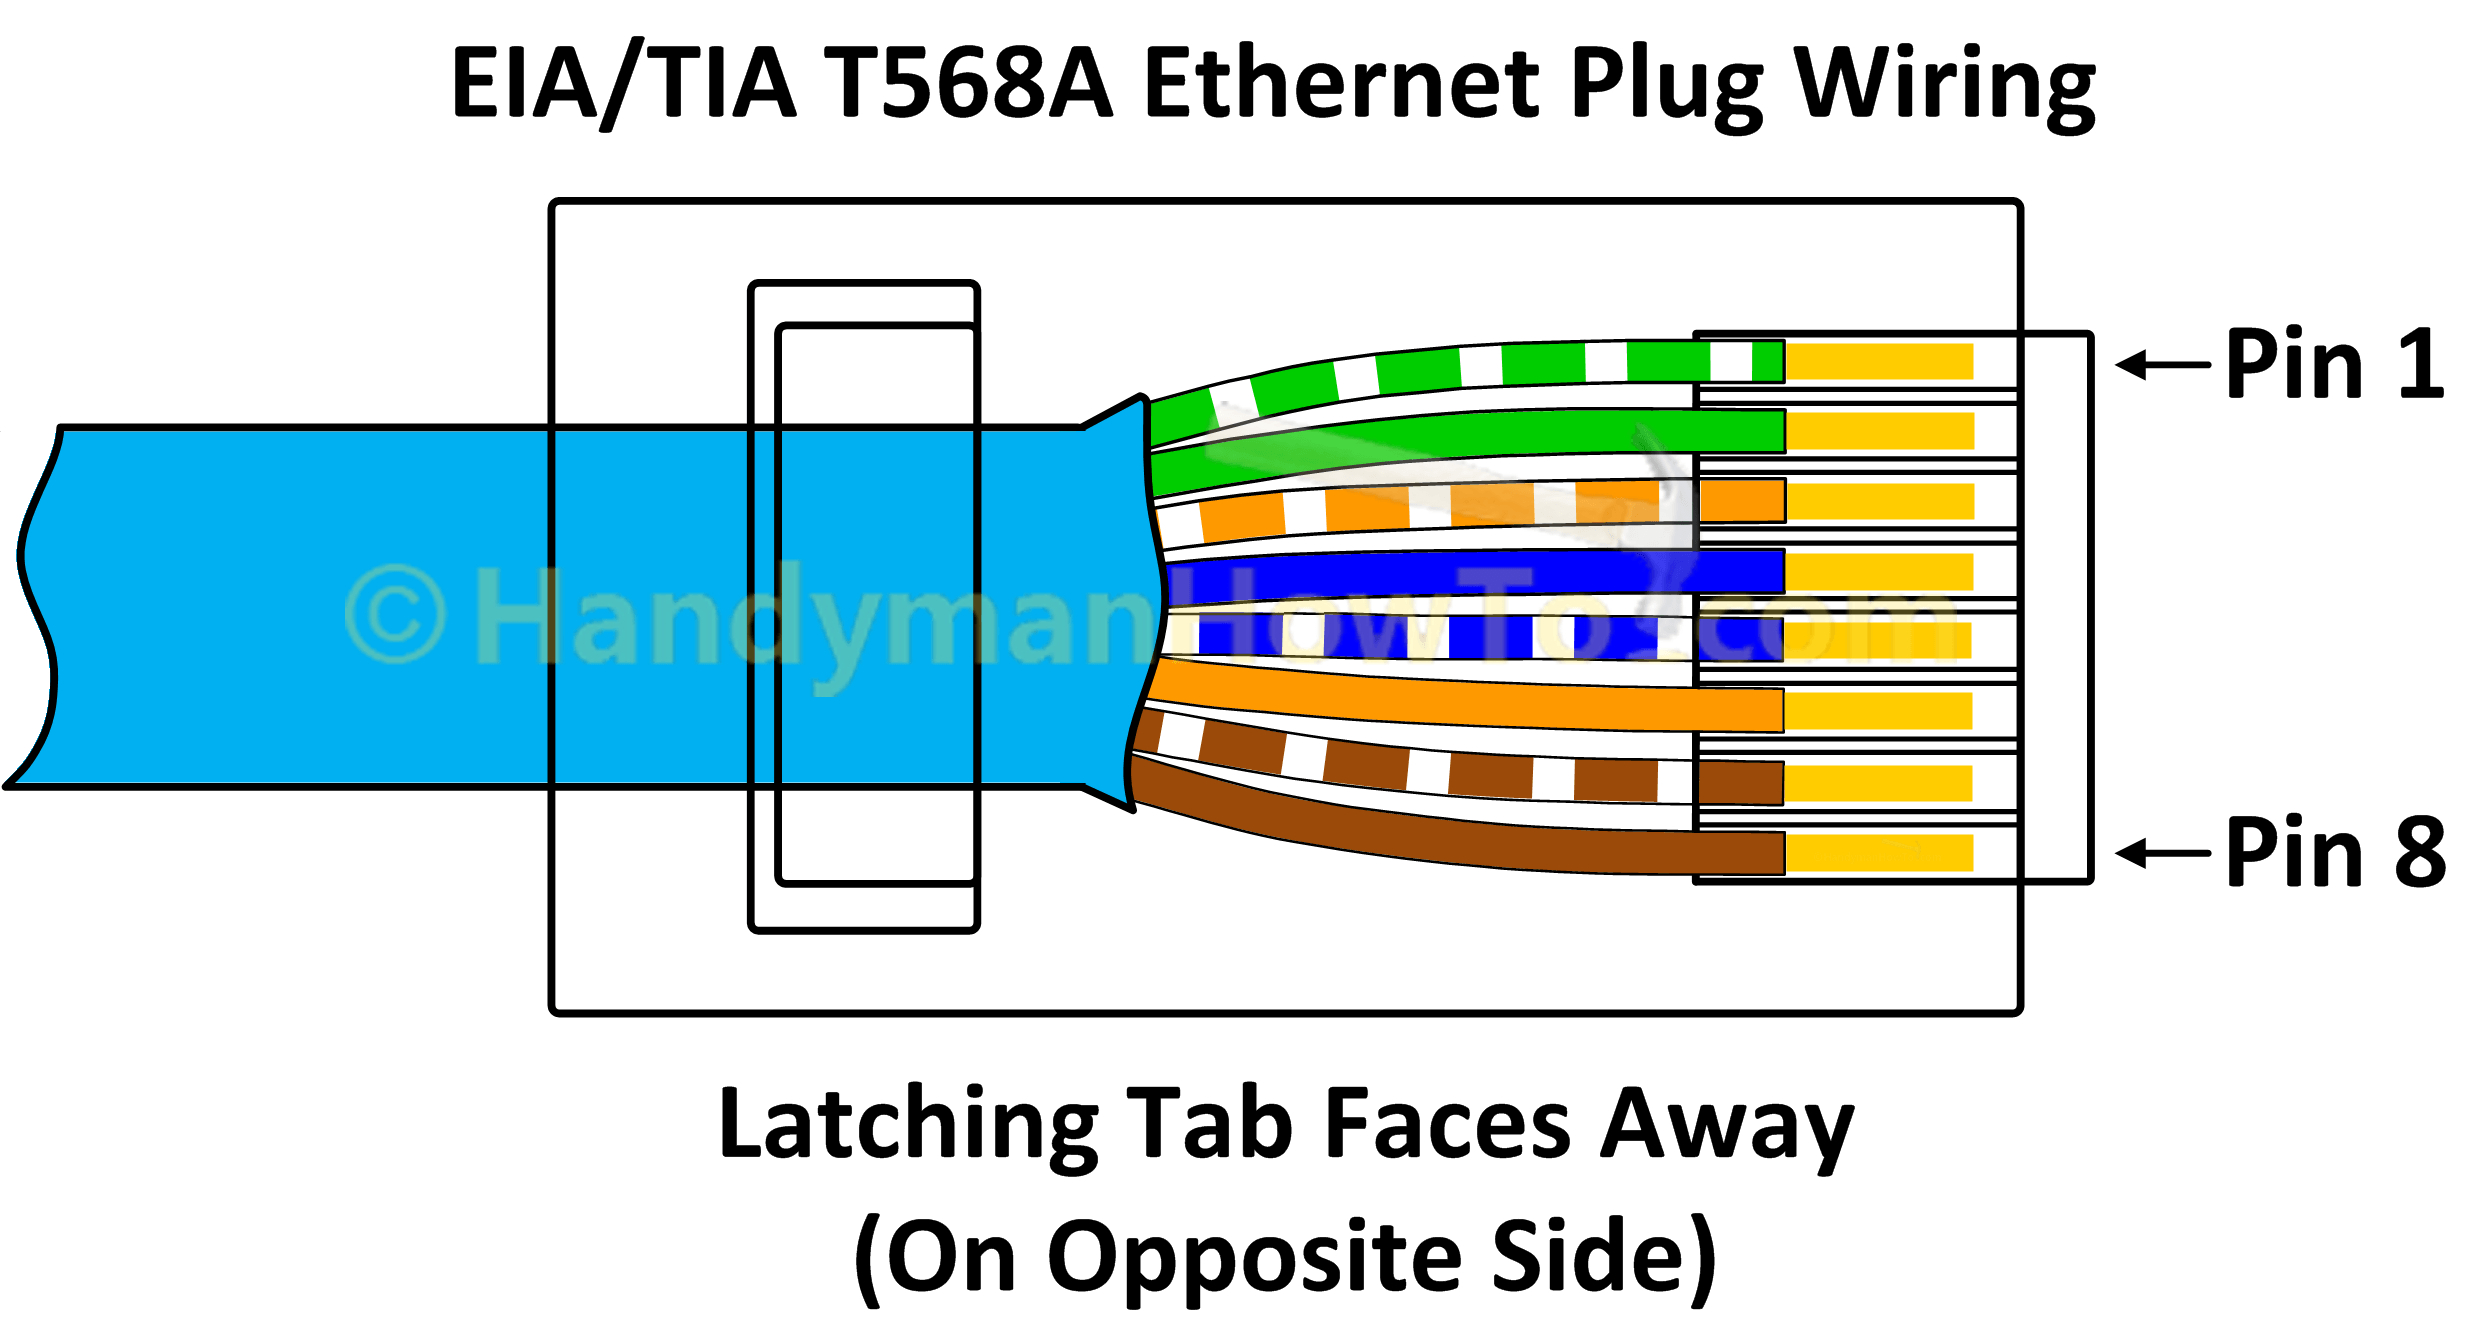 Rj45 Wiring Type B - Wiring Diagram Data - Cat 5 Cable Wiring Diagram